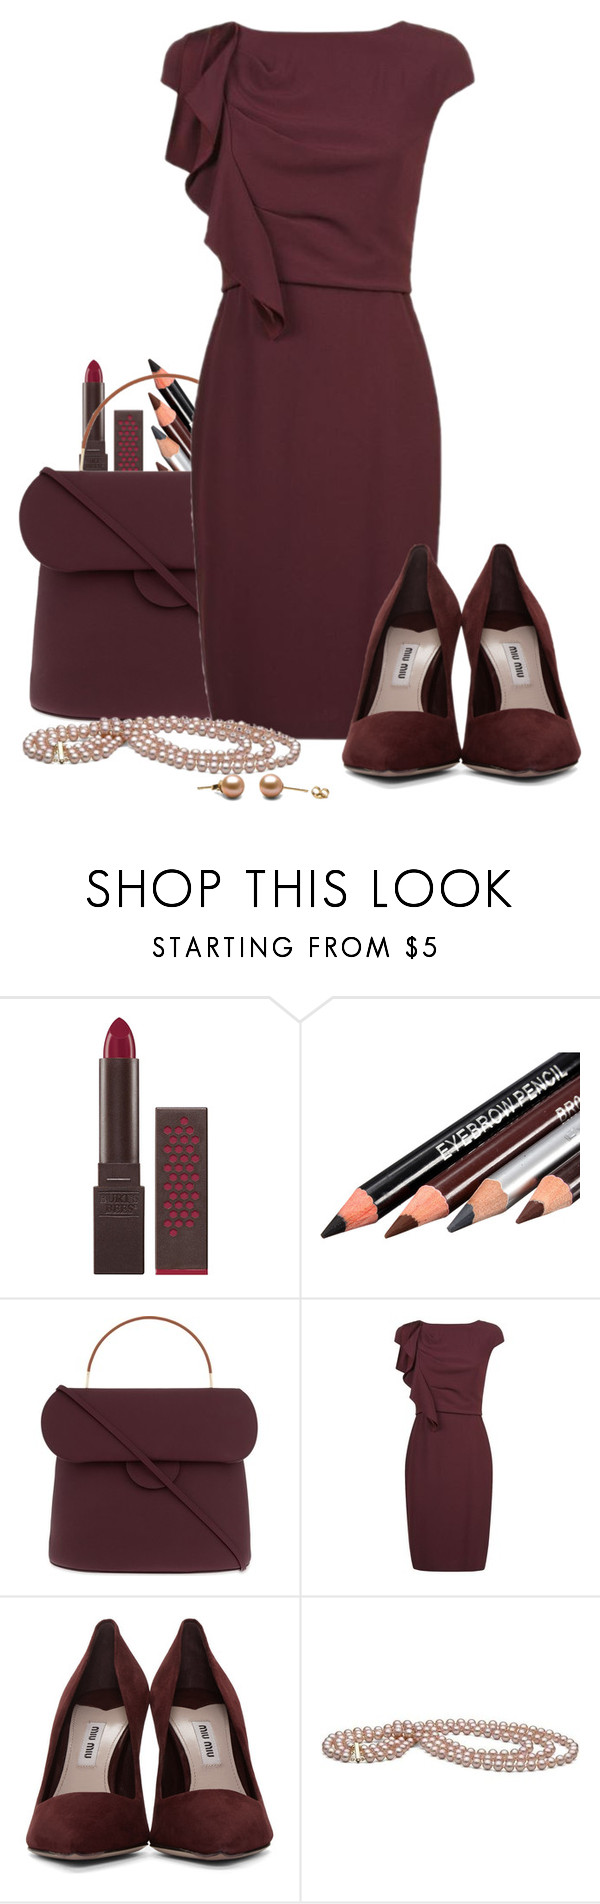 """Untitled #530"" by thecomedian ❤ liked on Polyvore featuring Burt's Bees, Roksanda, MaxMara and Miu Miu"